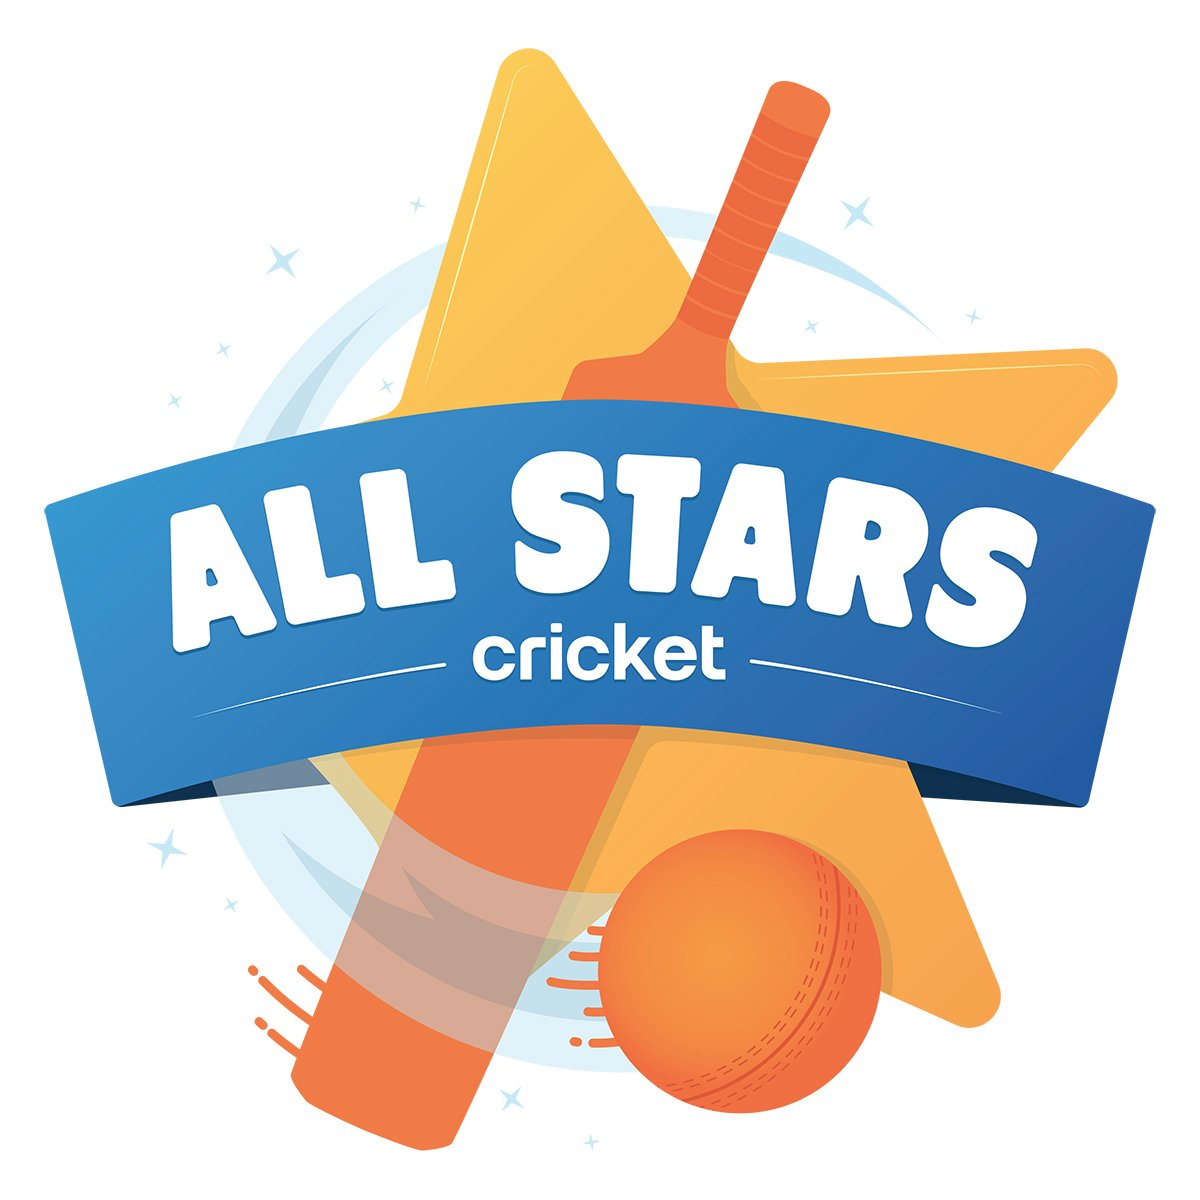 All stars Cricket .jpg